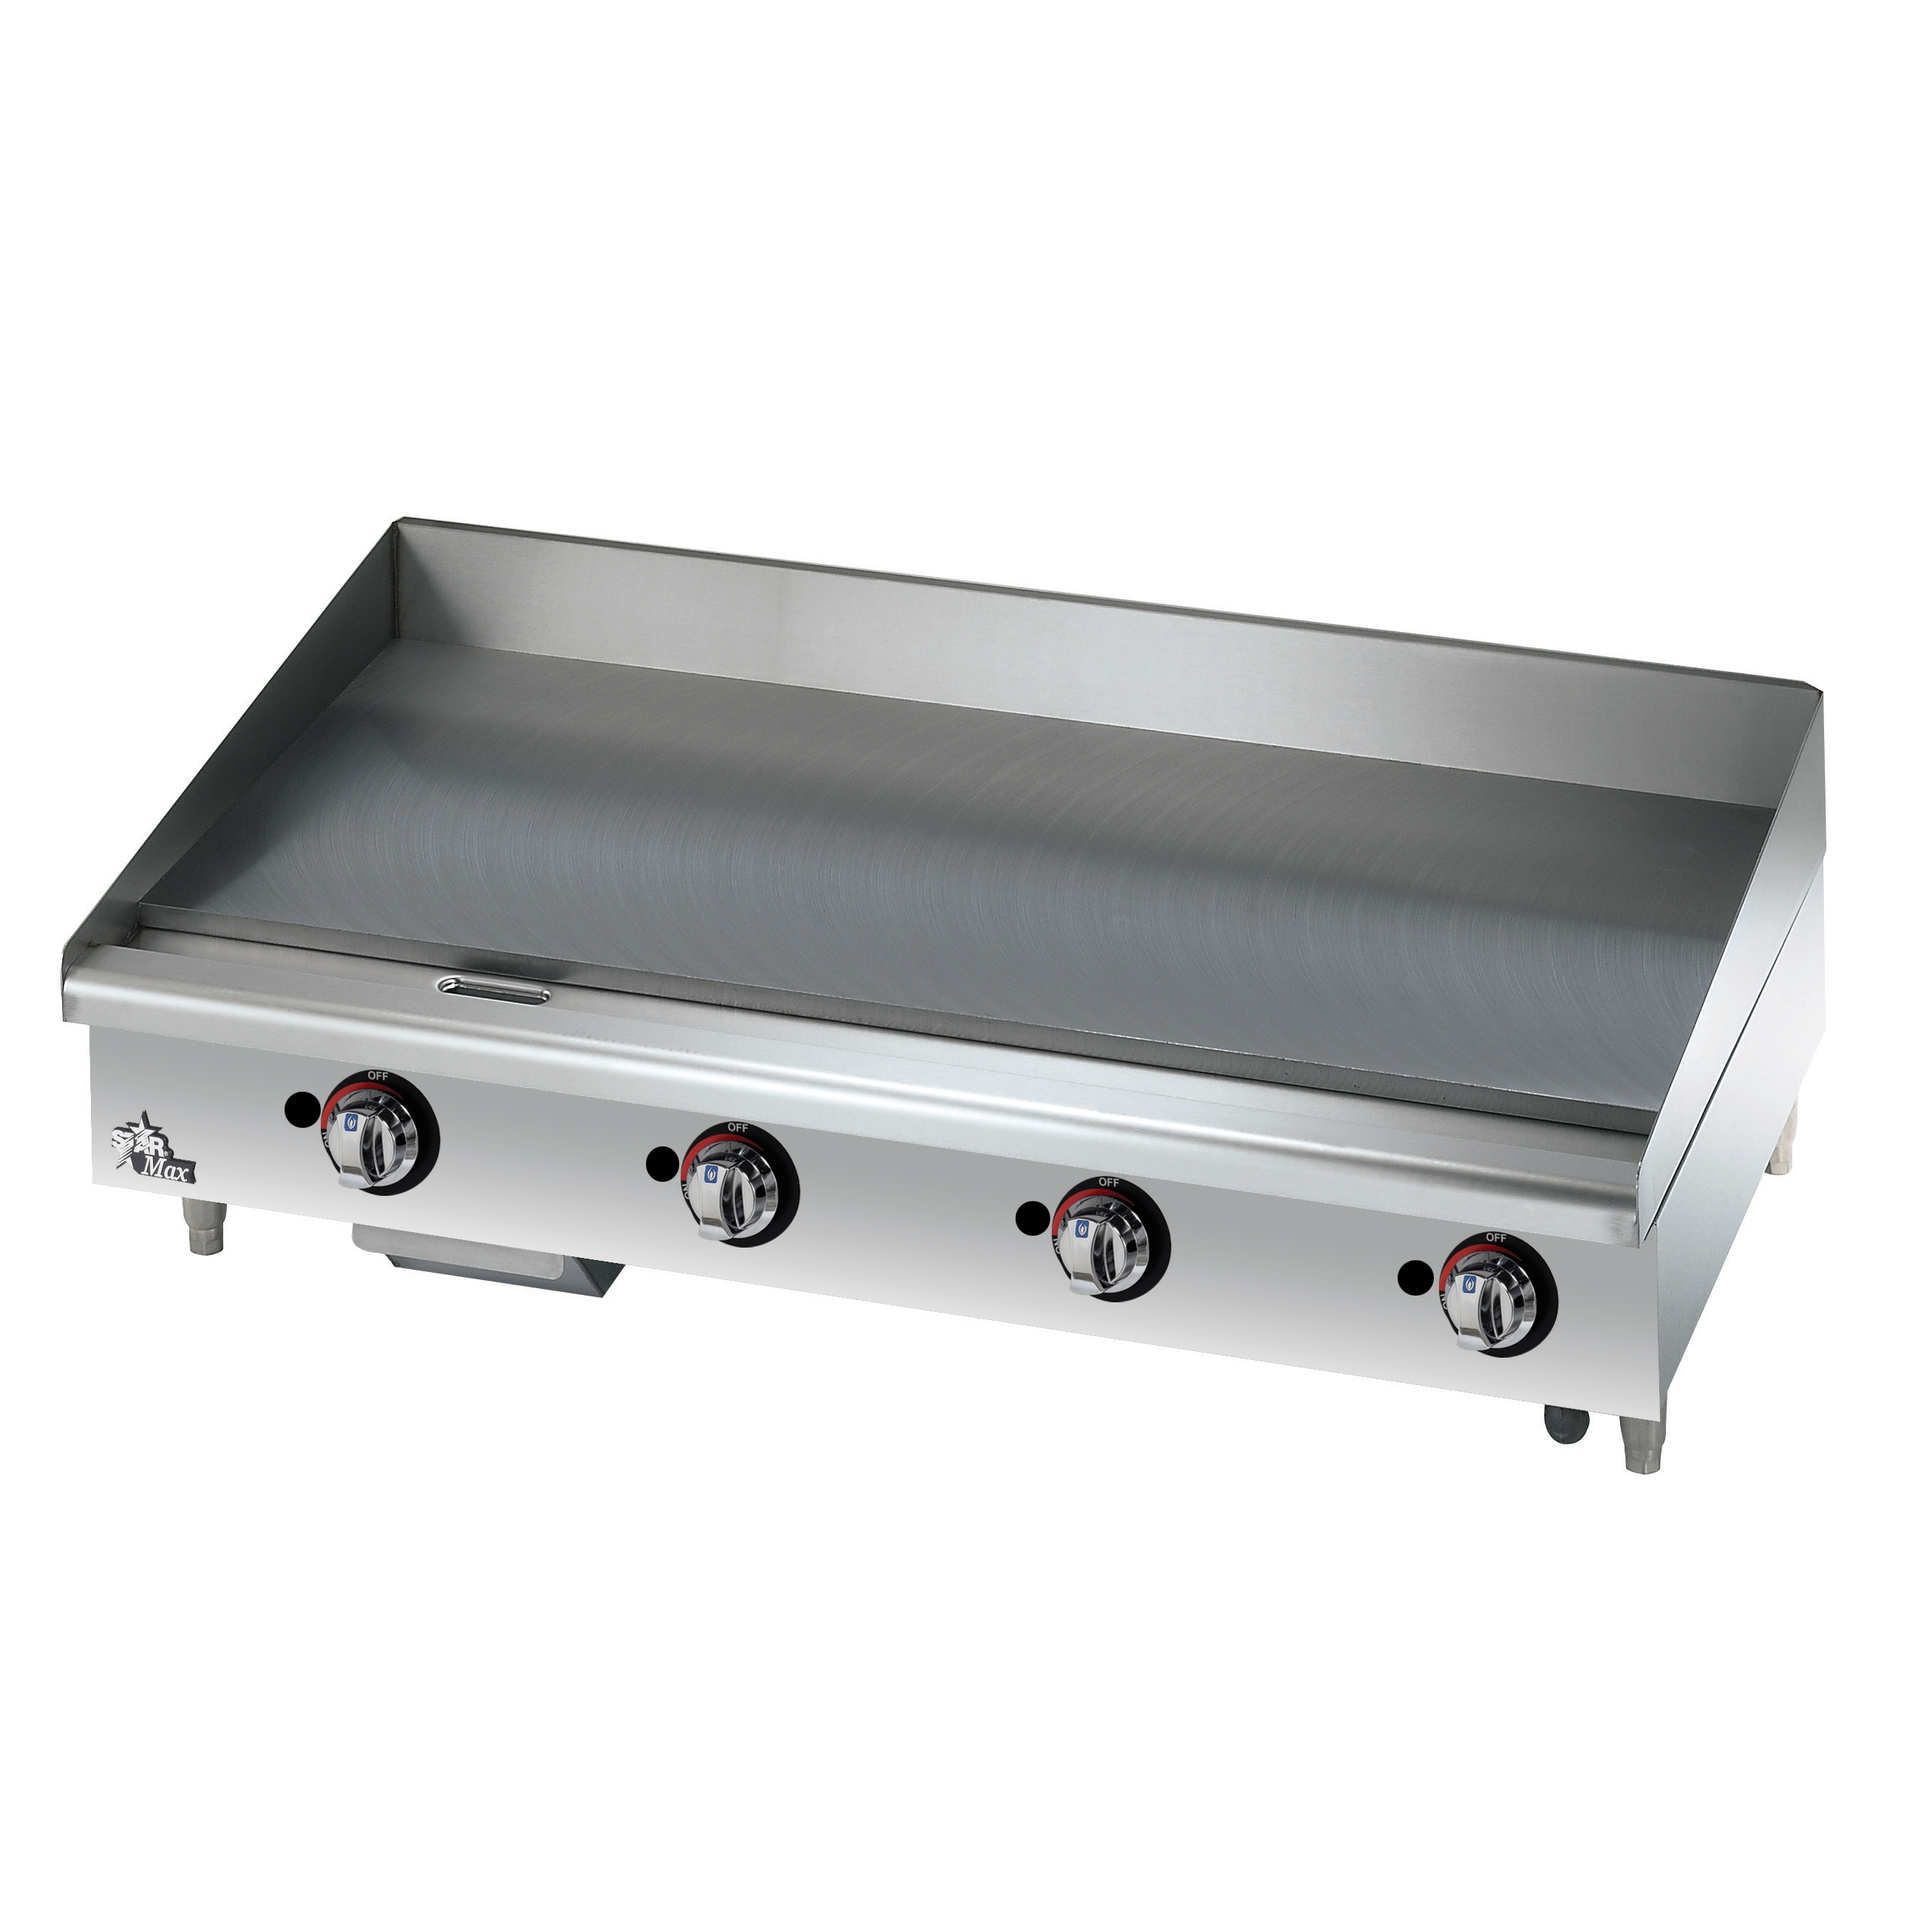 Star 648MF griddle, gas, countertop